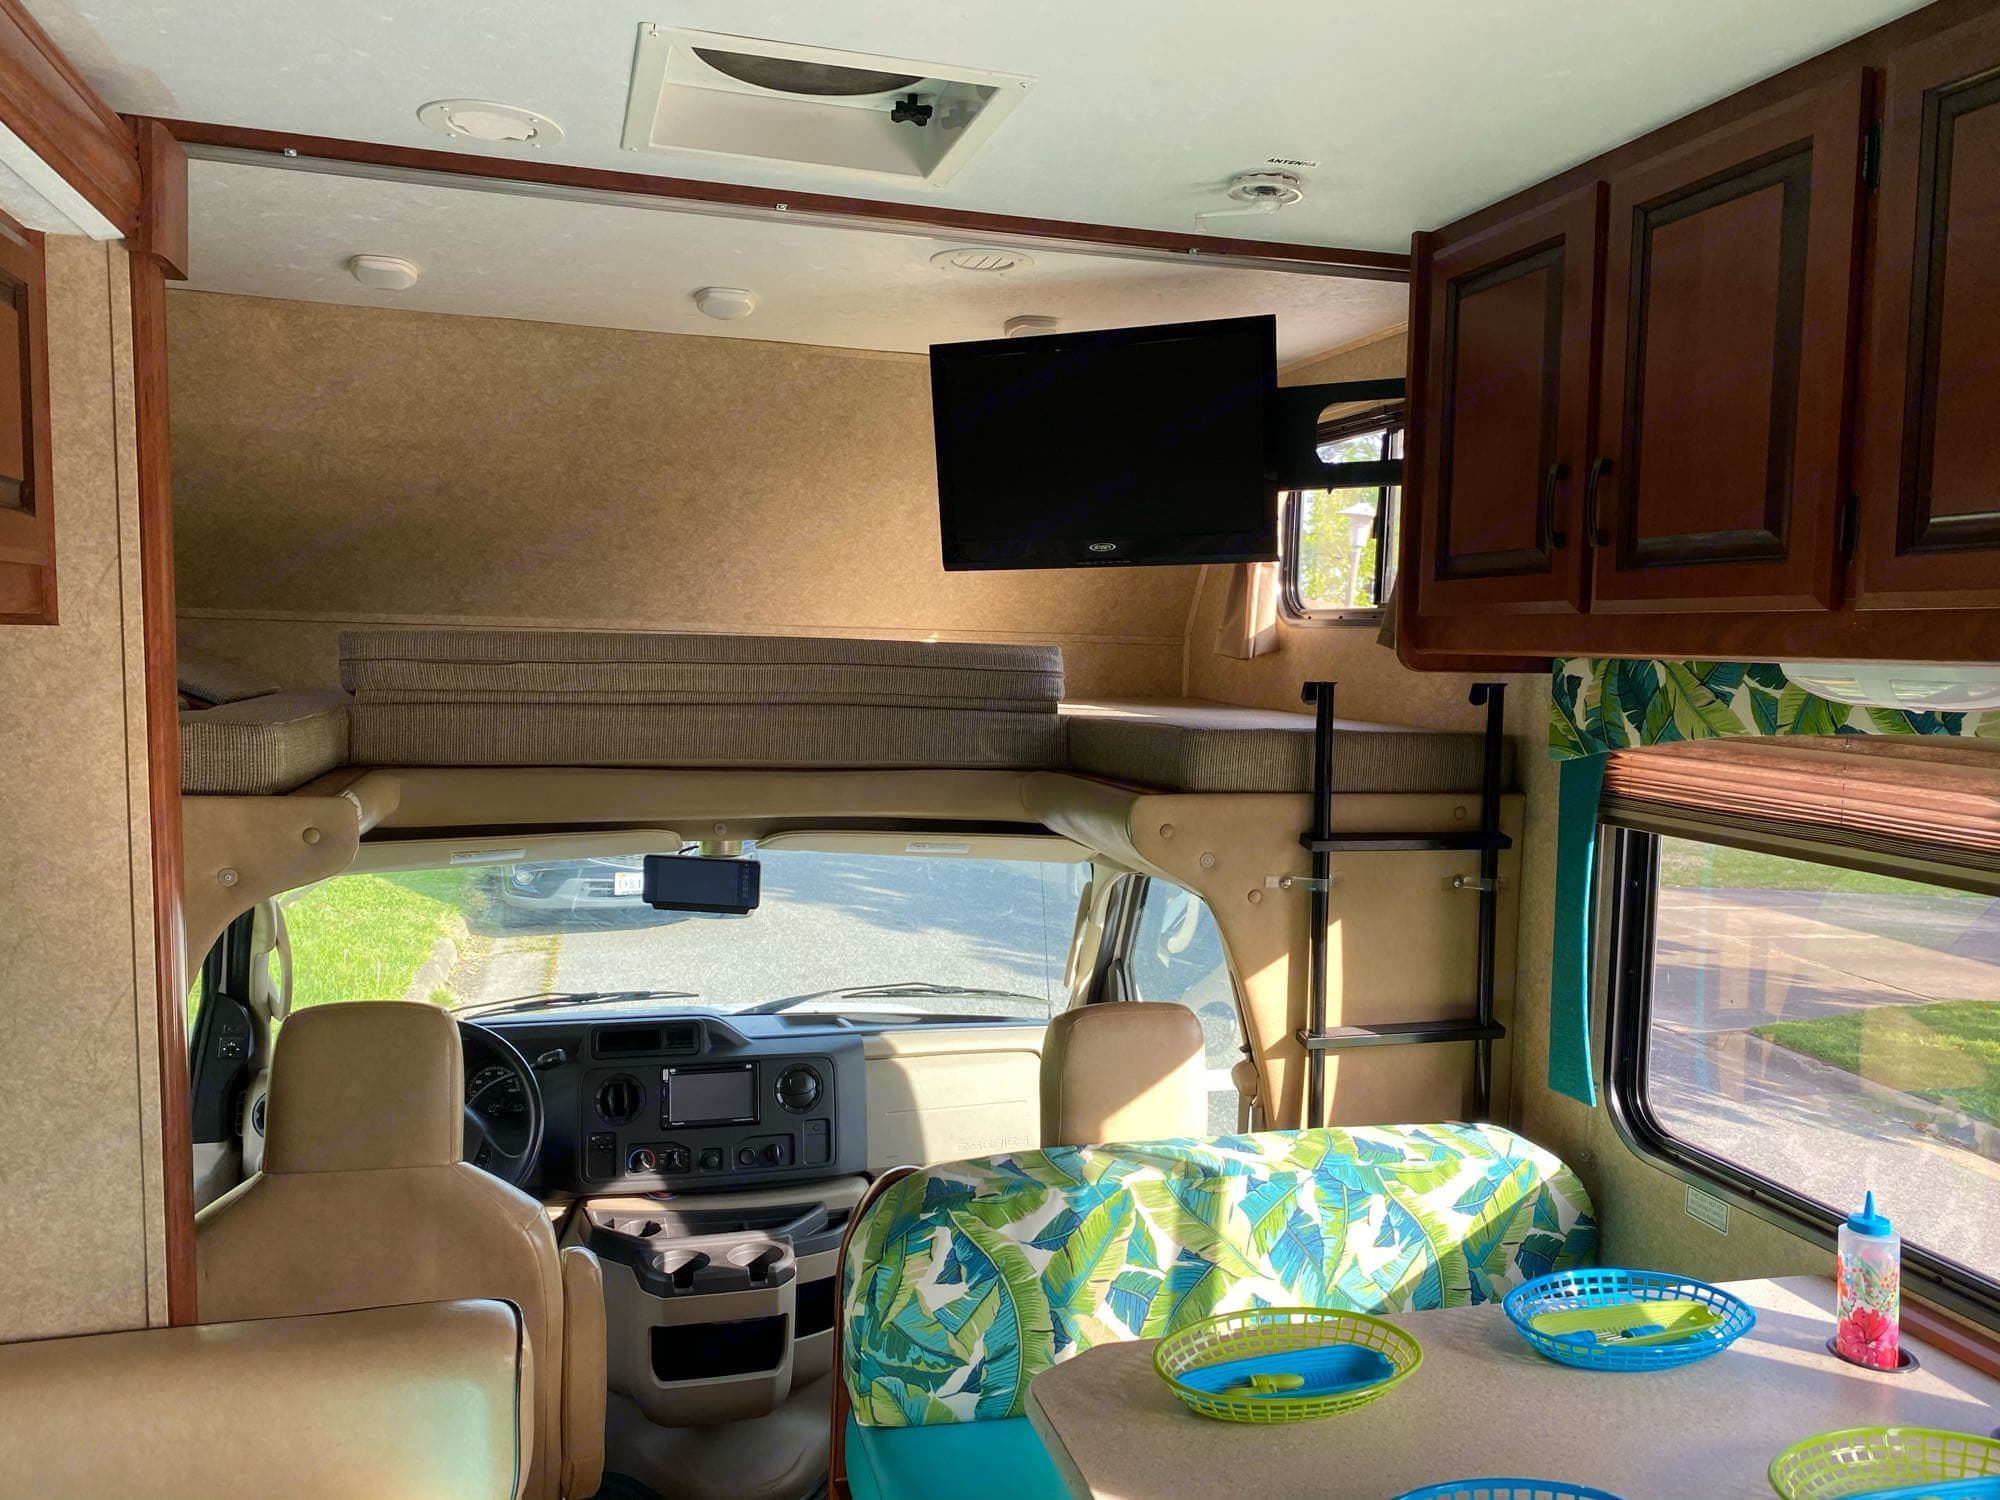 2 adults can sleep comfortably here. Front half folds up during driving for added head space. Television arm swings in our out for viewing ease.. Forest River Sunseeker 2013